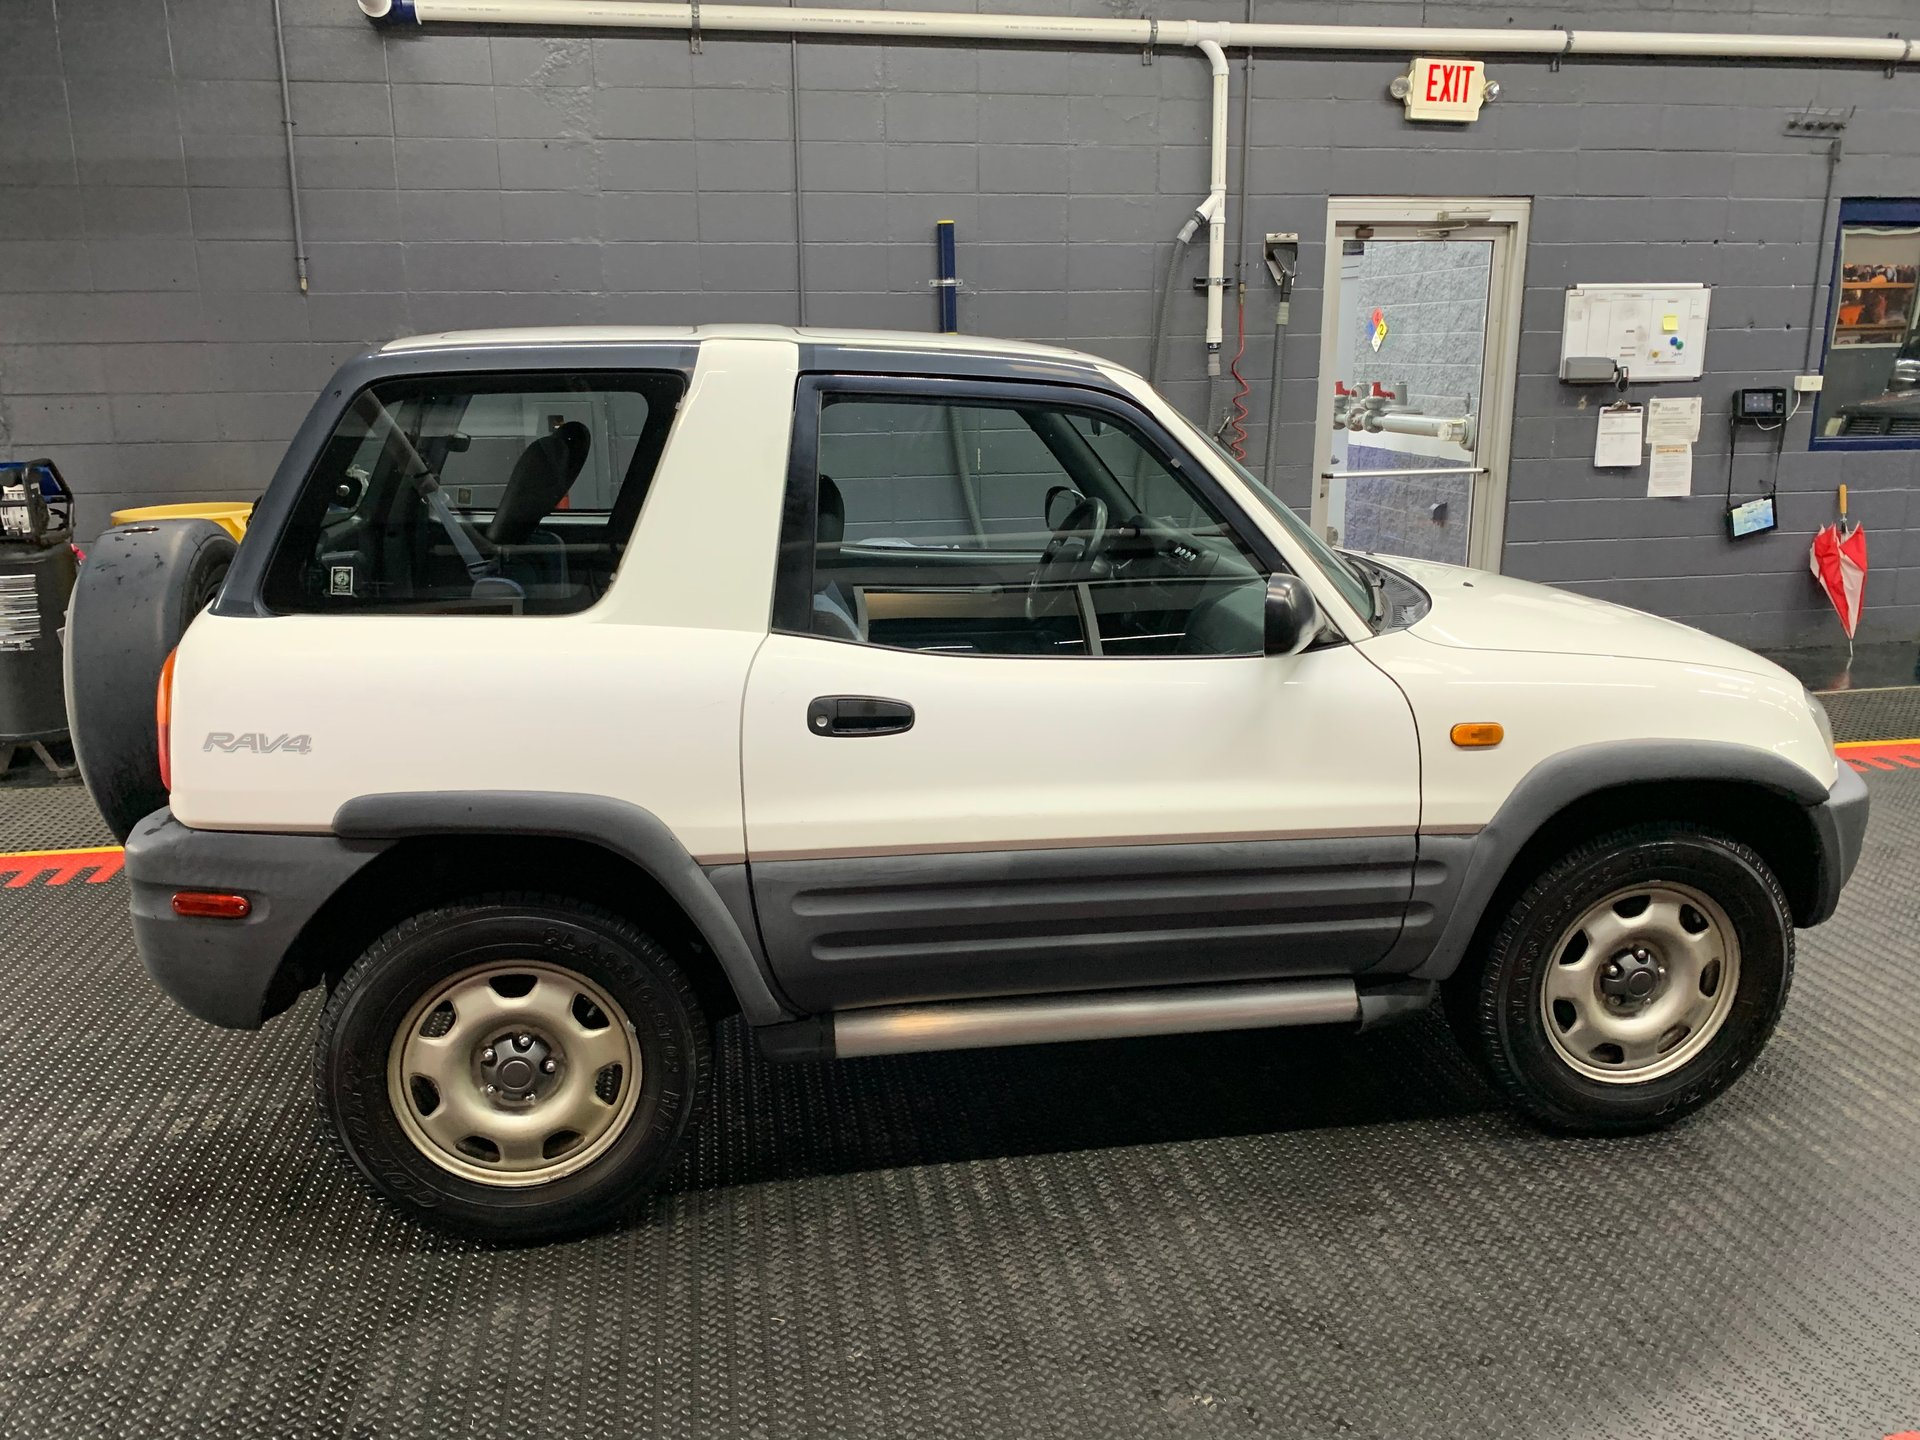 Showcase cover image for 1996 2 door manual RAV4 w/ 64,000 miles